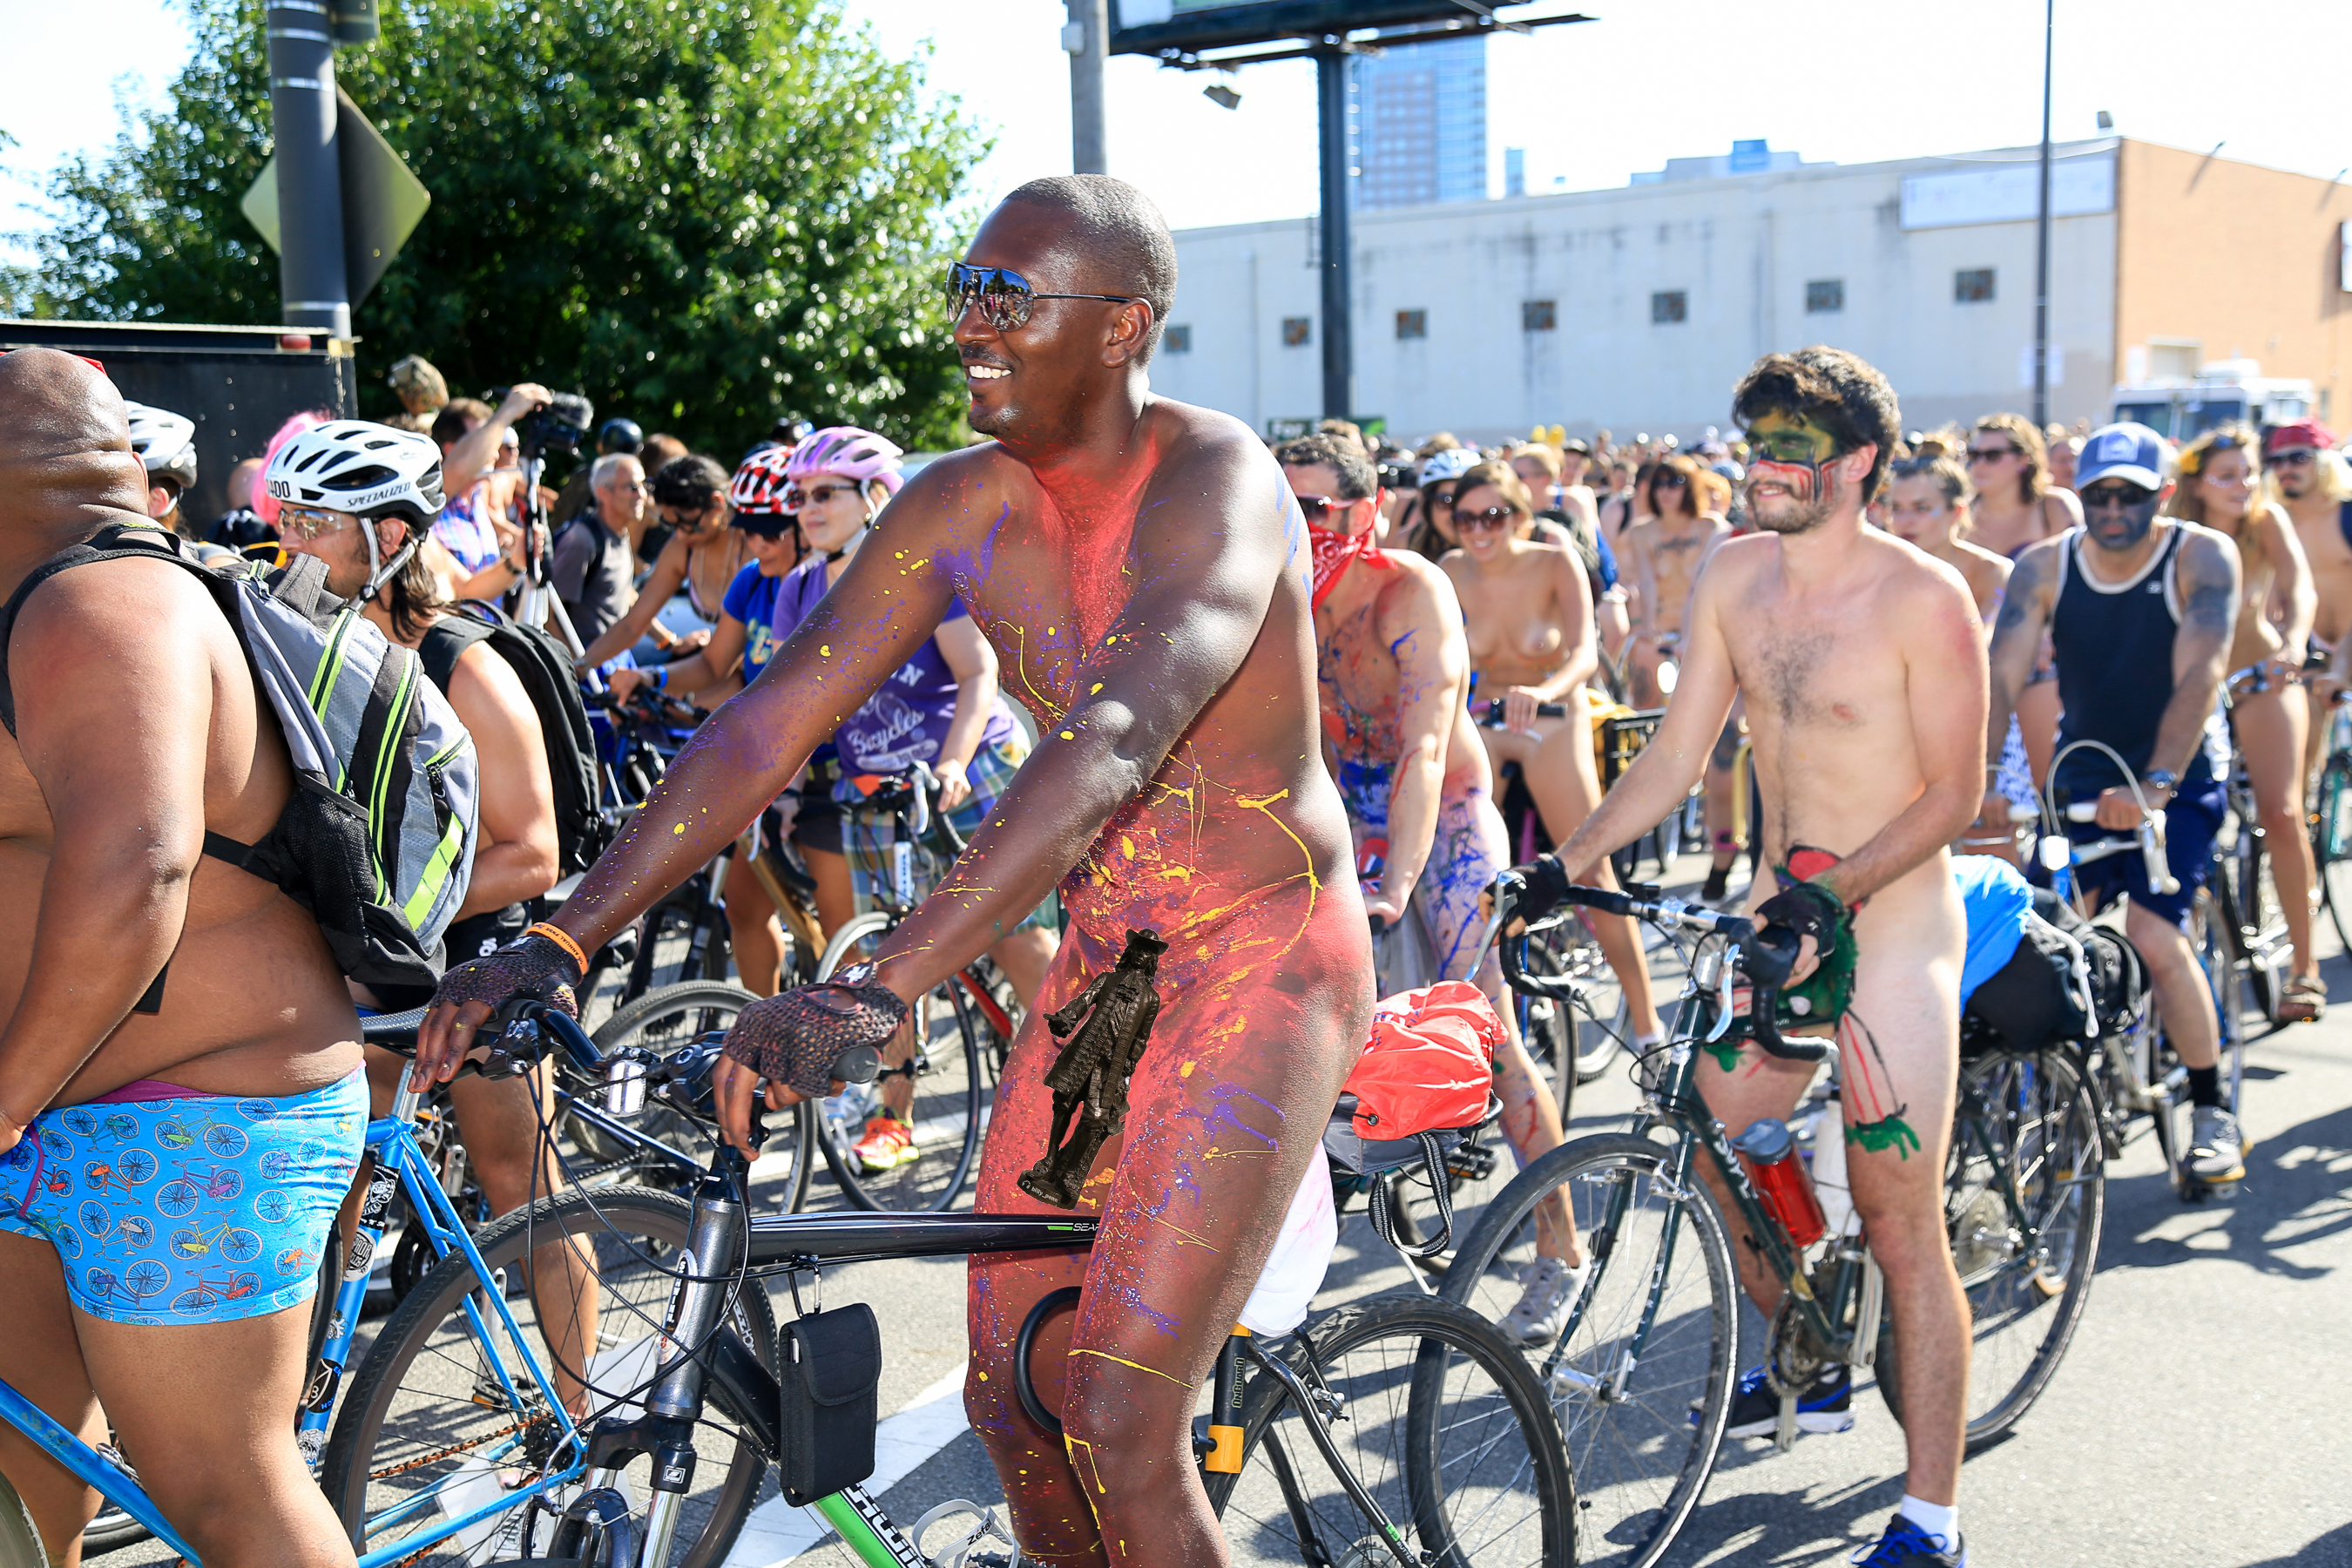 Photo from a past Philly Naked Bike Ride. Sorry to Flat Billy who made a Photoshop appearance. That might be against his religion.